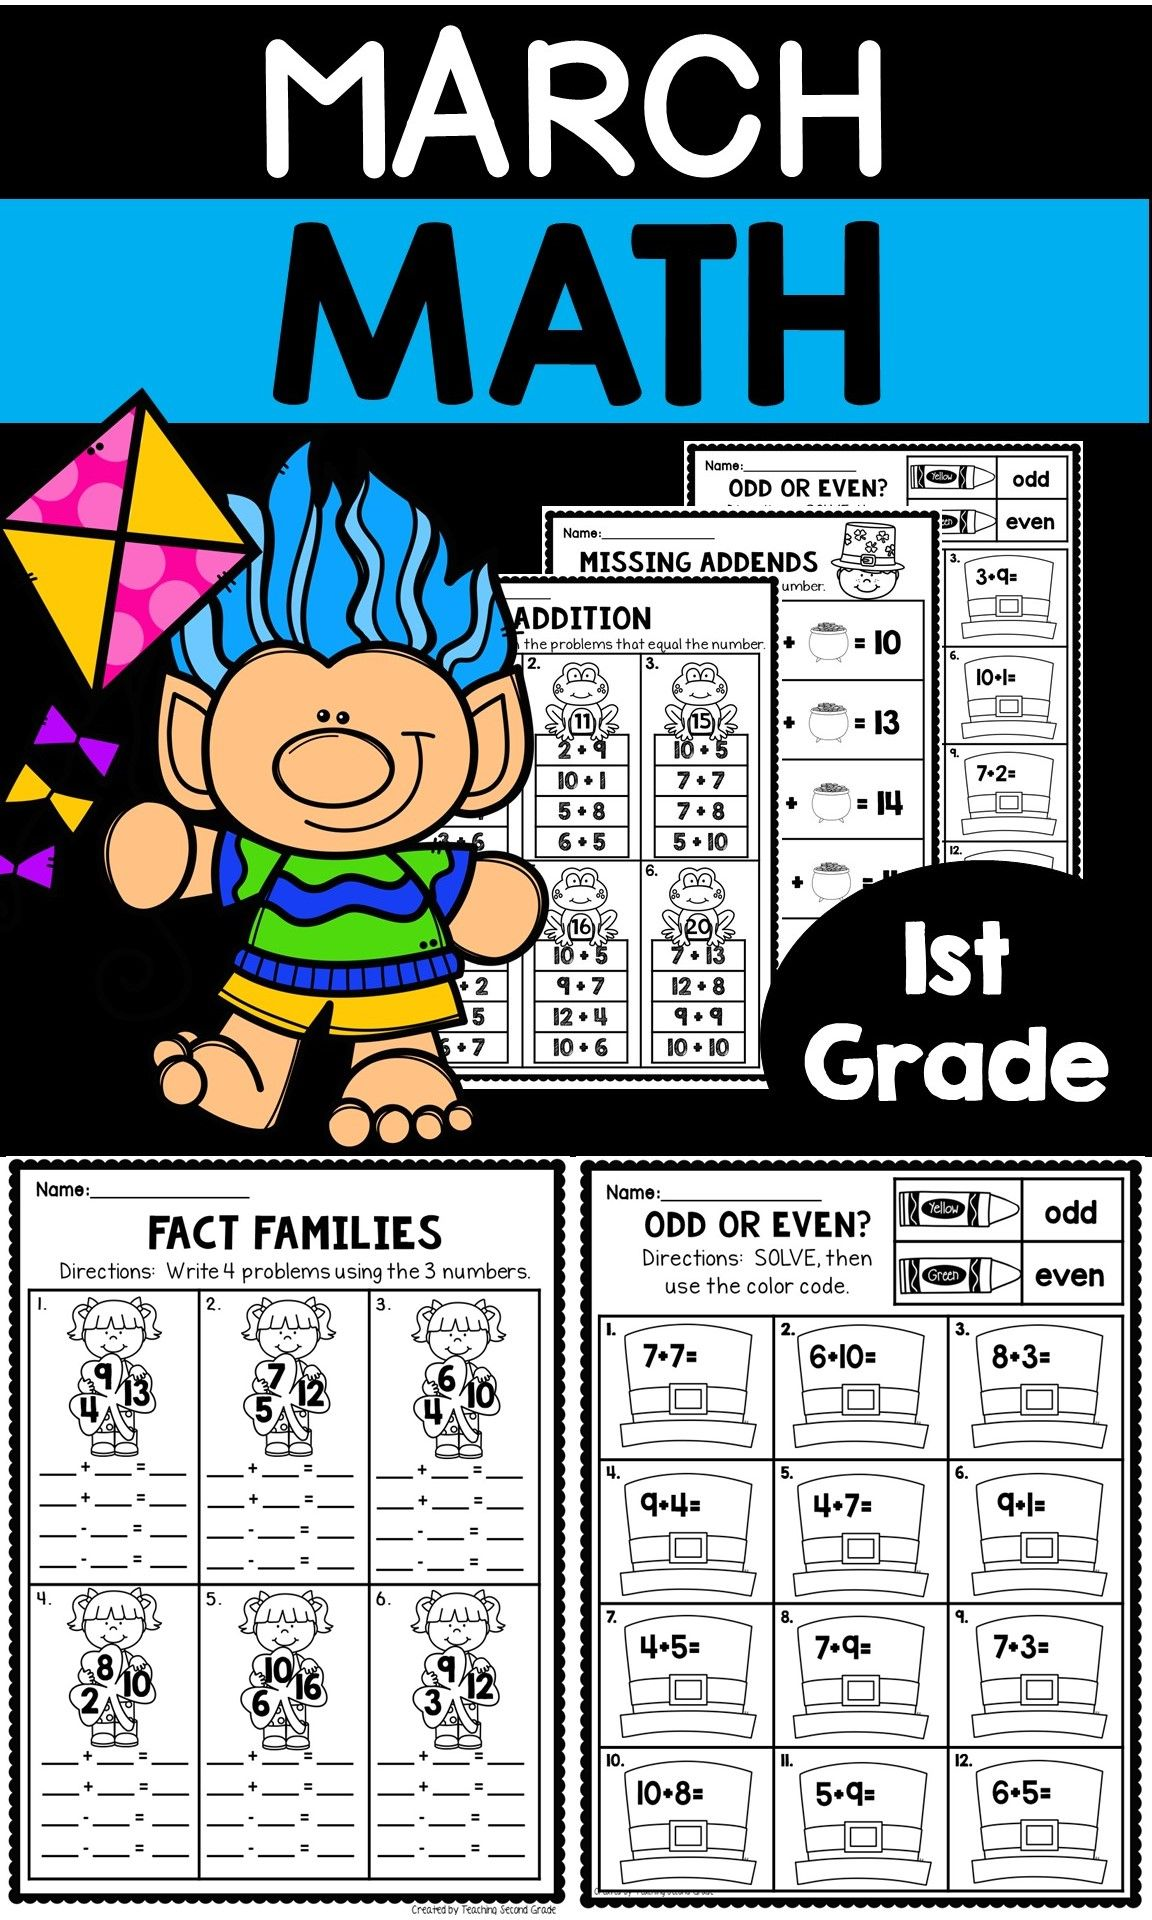 Math Worksheets First Grade For March